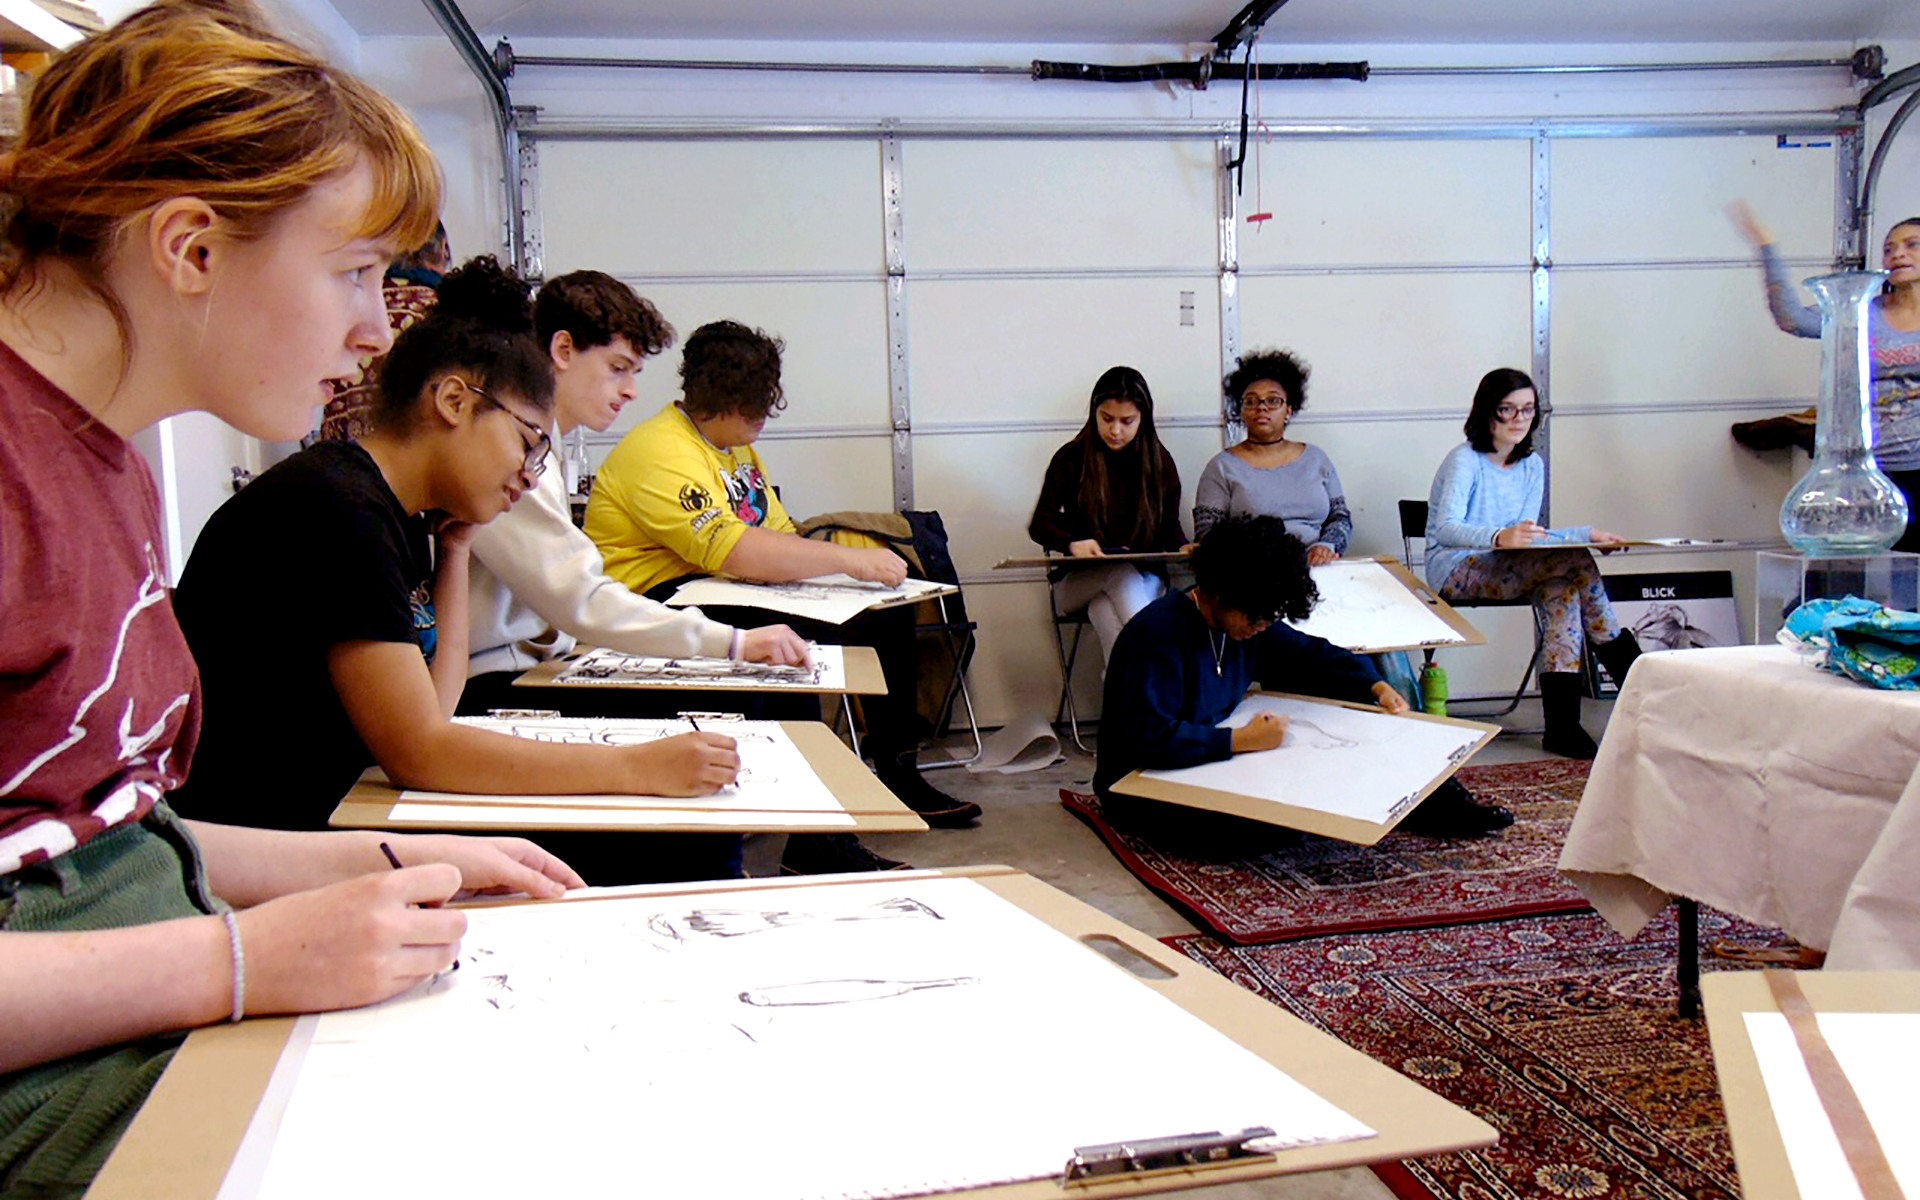 Youth drawing workshop organized by the Teen Council